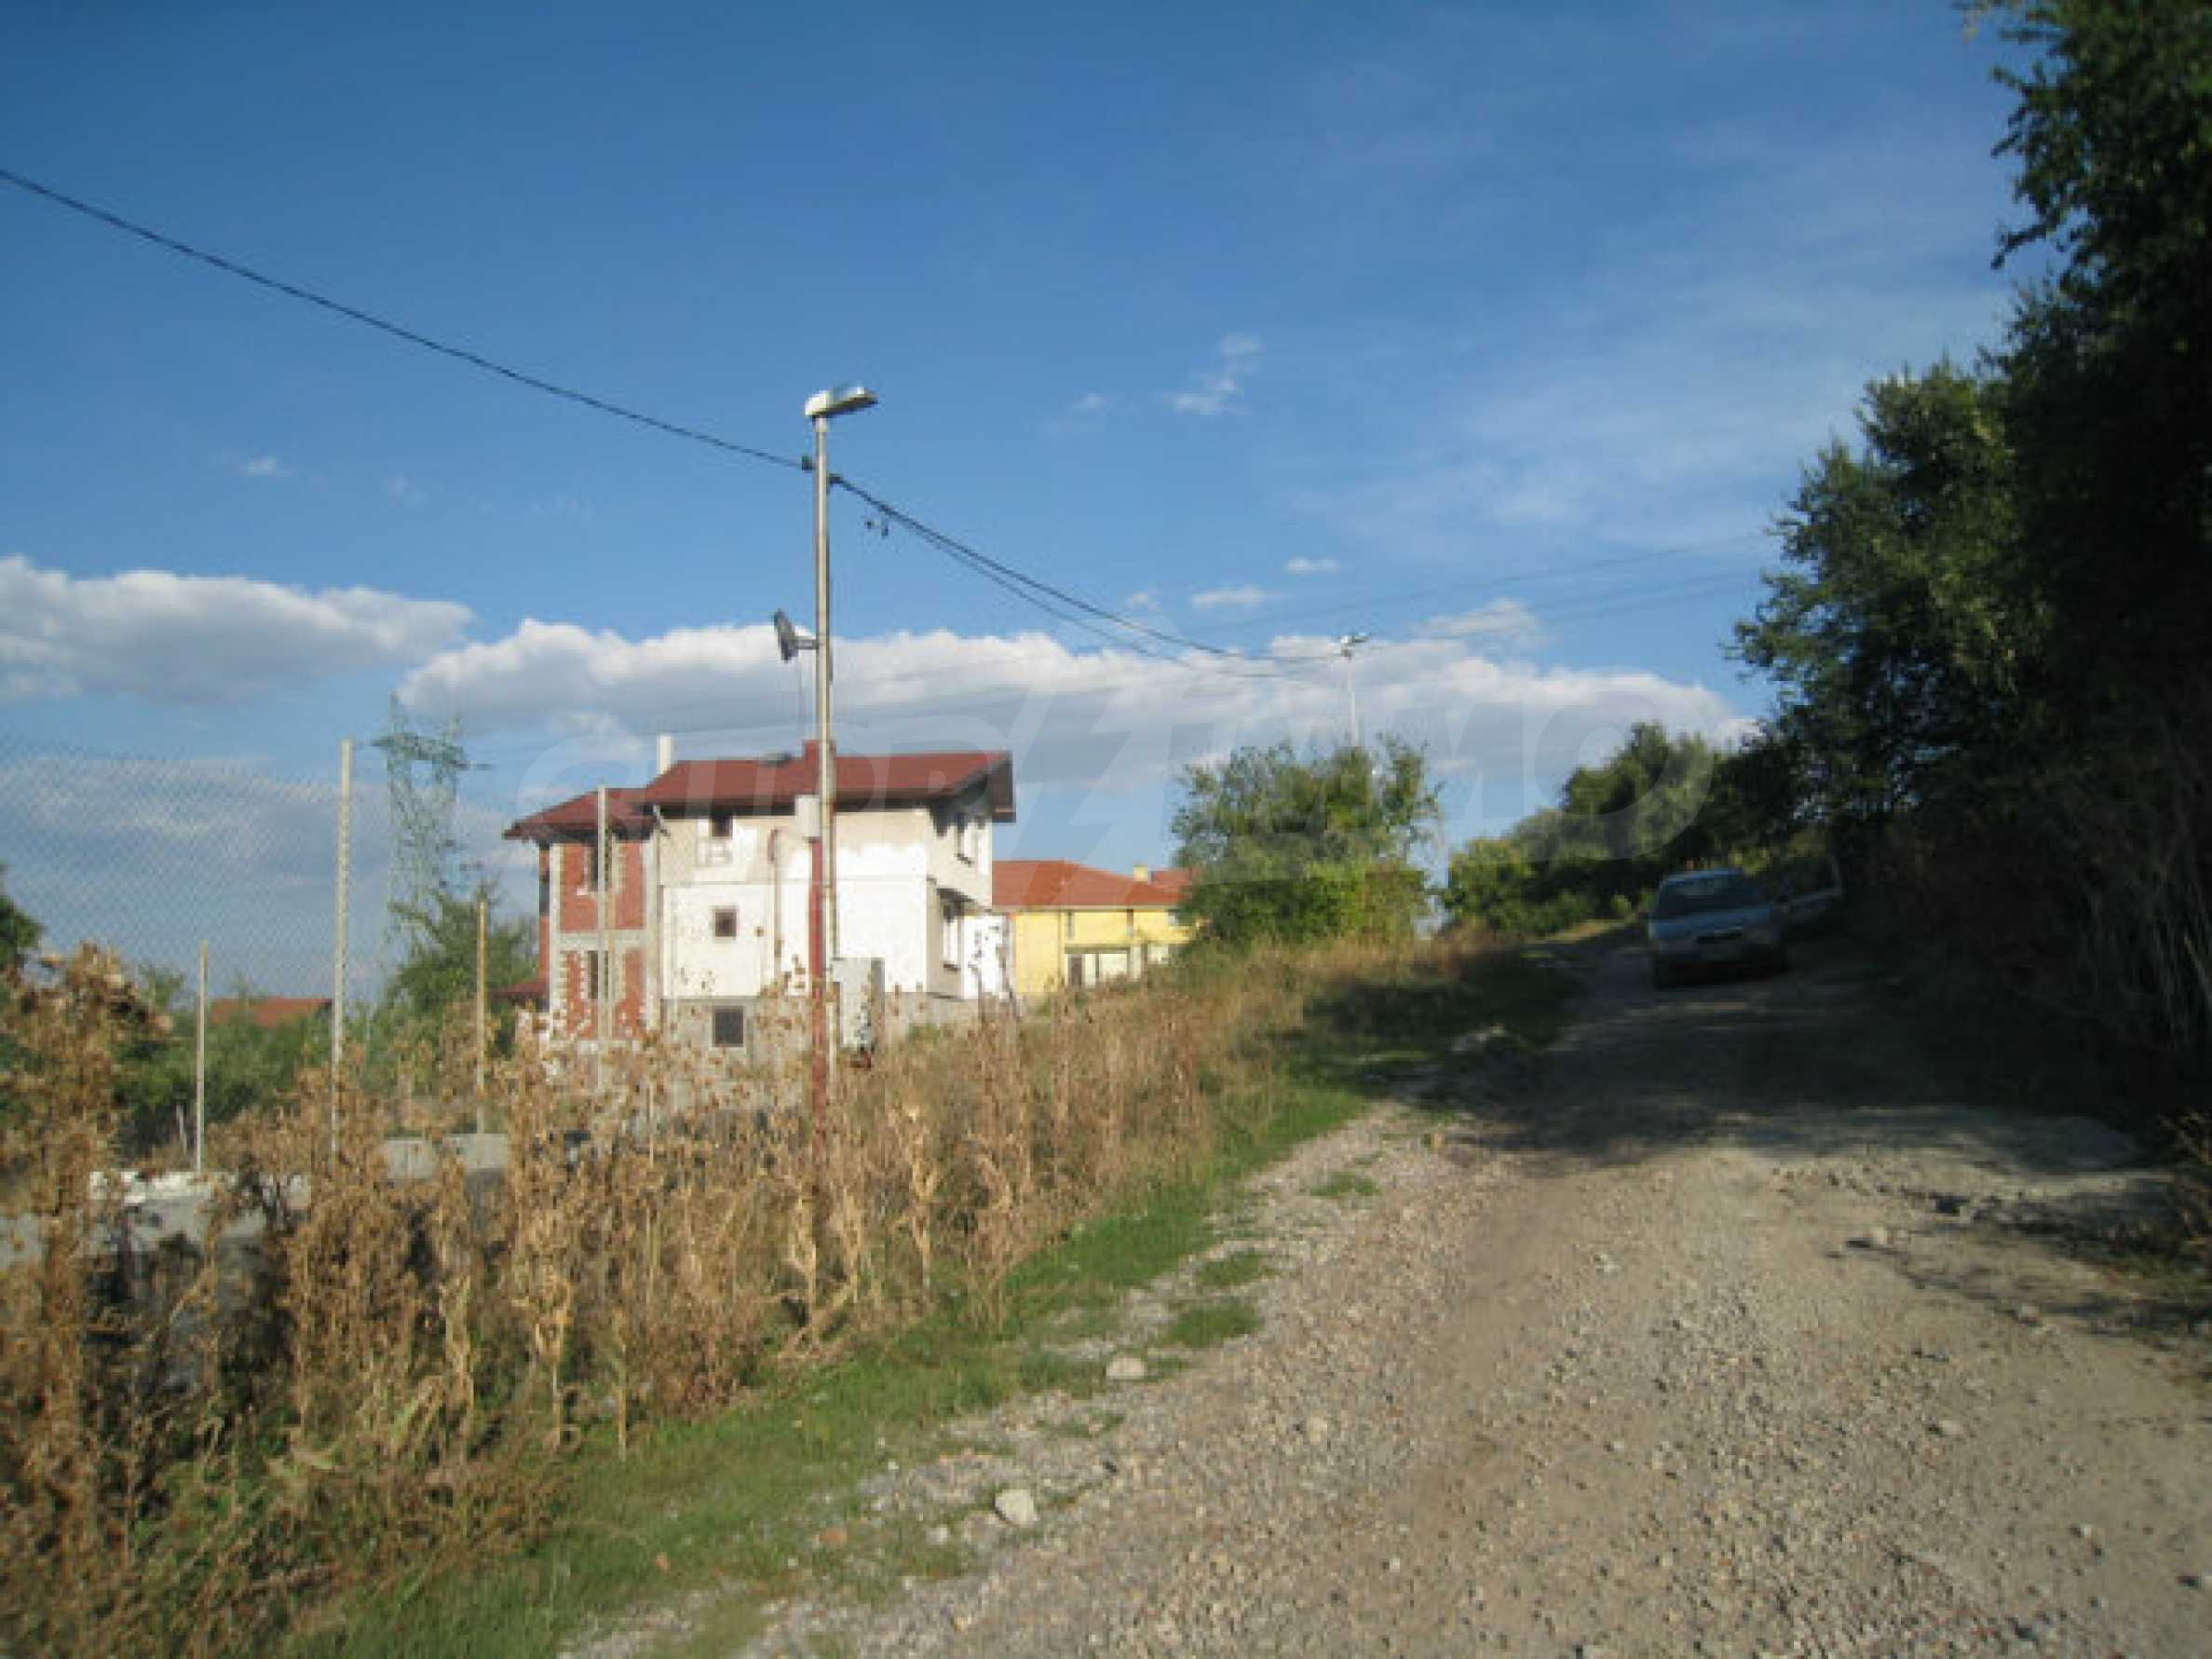 Regulated plot of land for rural private house or villa near Sofia 20